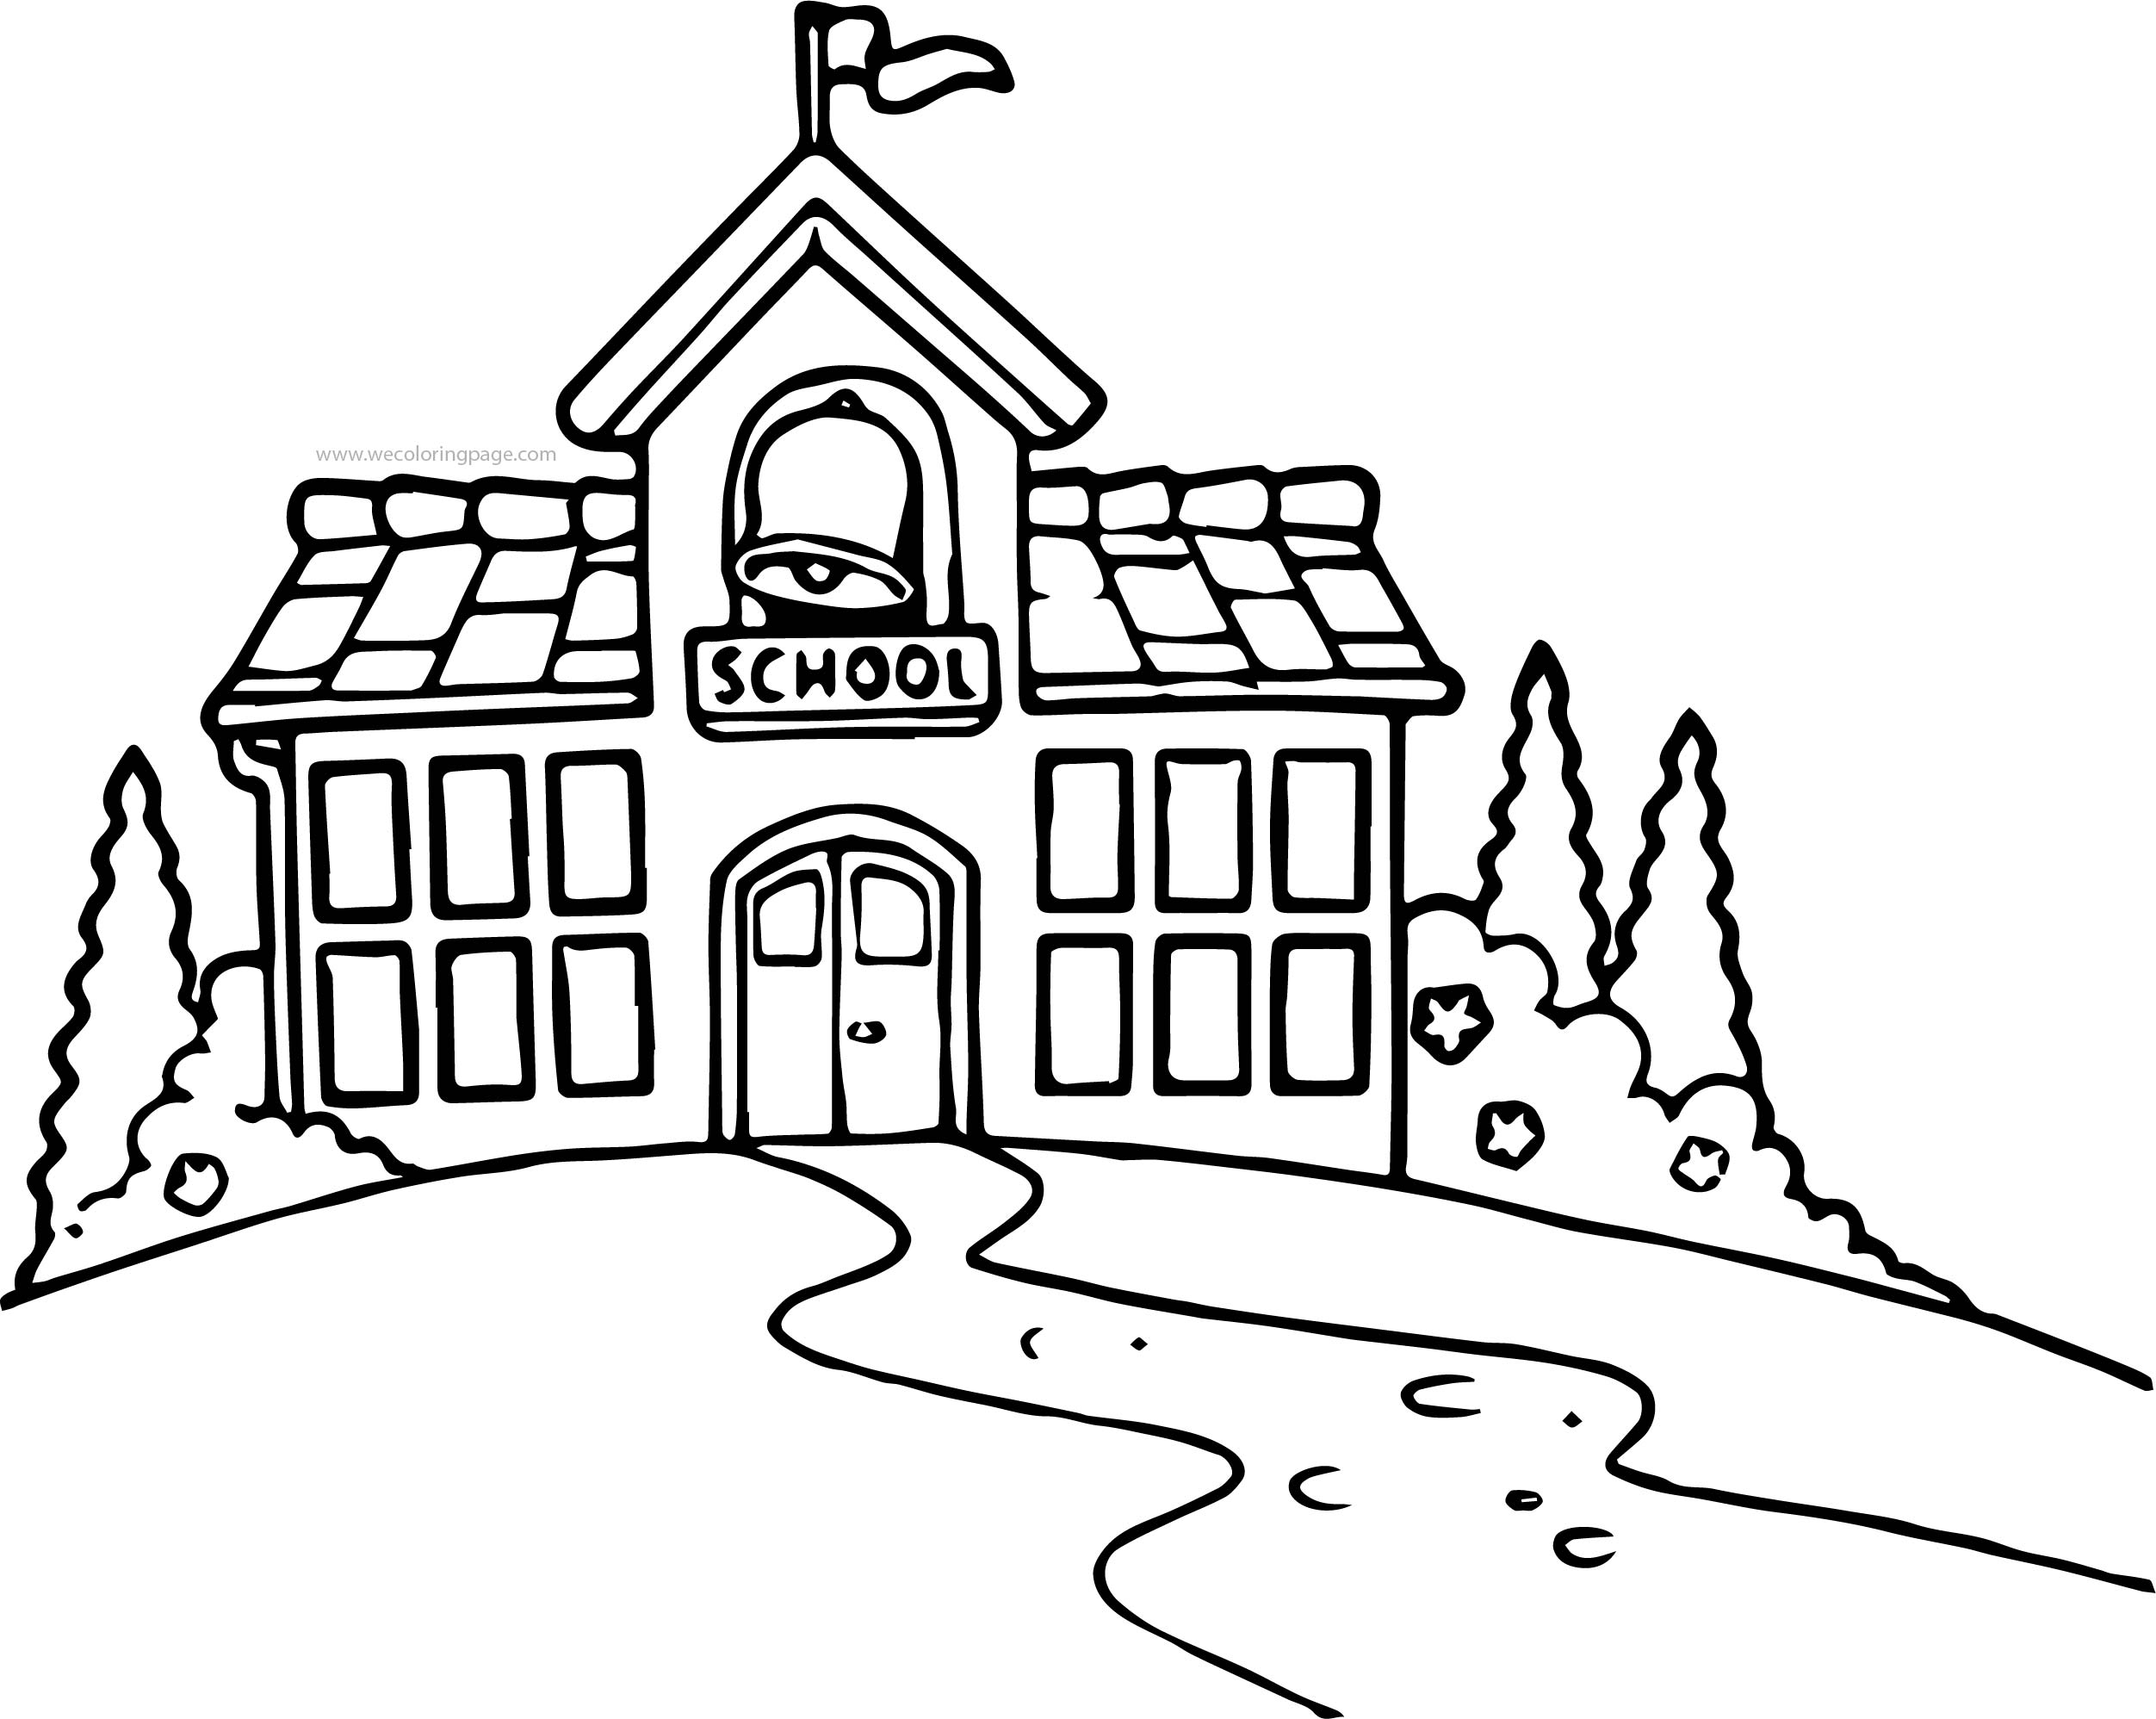 School Building Black And White School Building Coloring Page ...